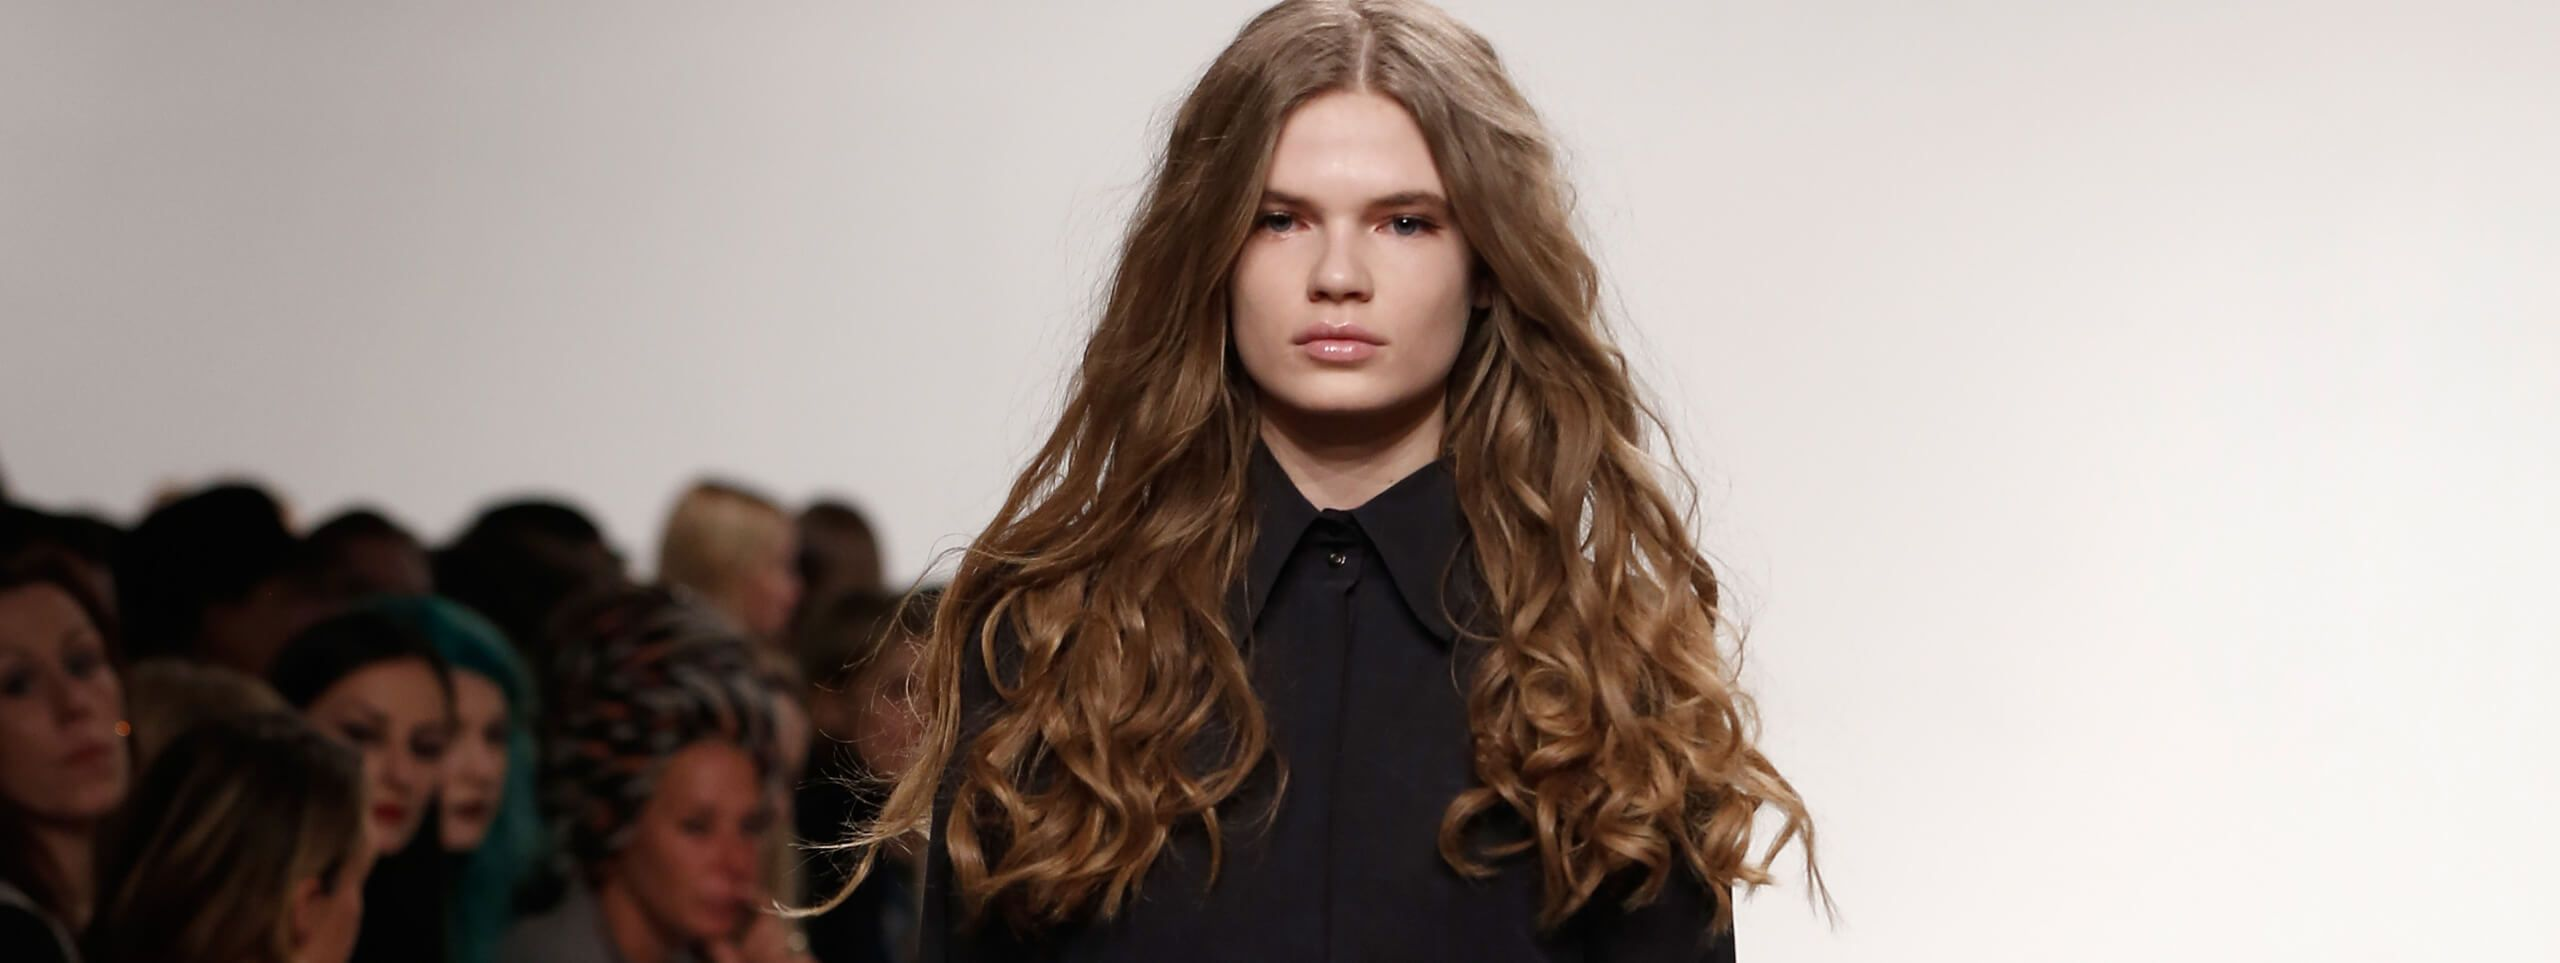 Model on a runway with long curly hairstyle